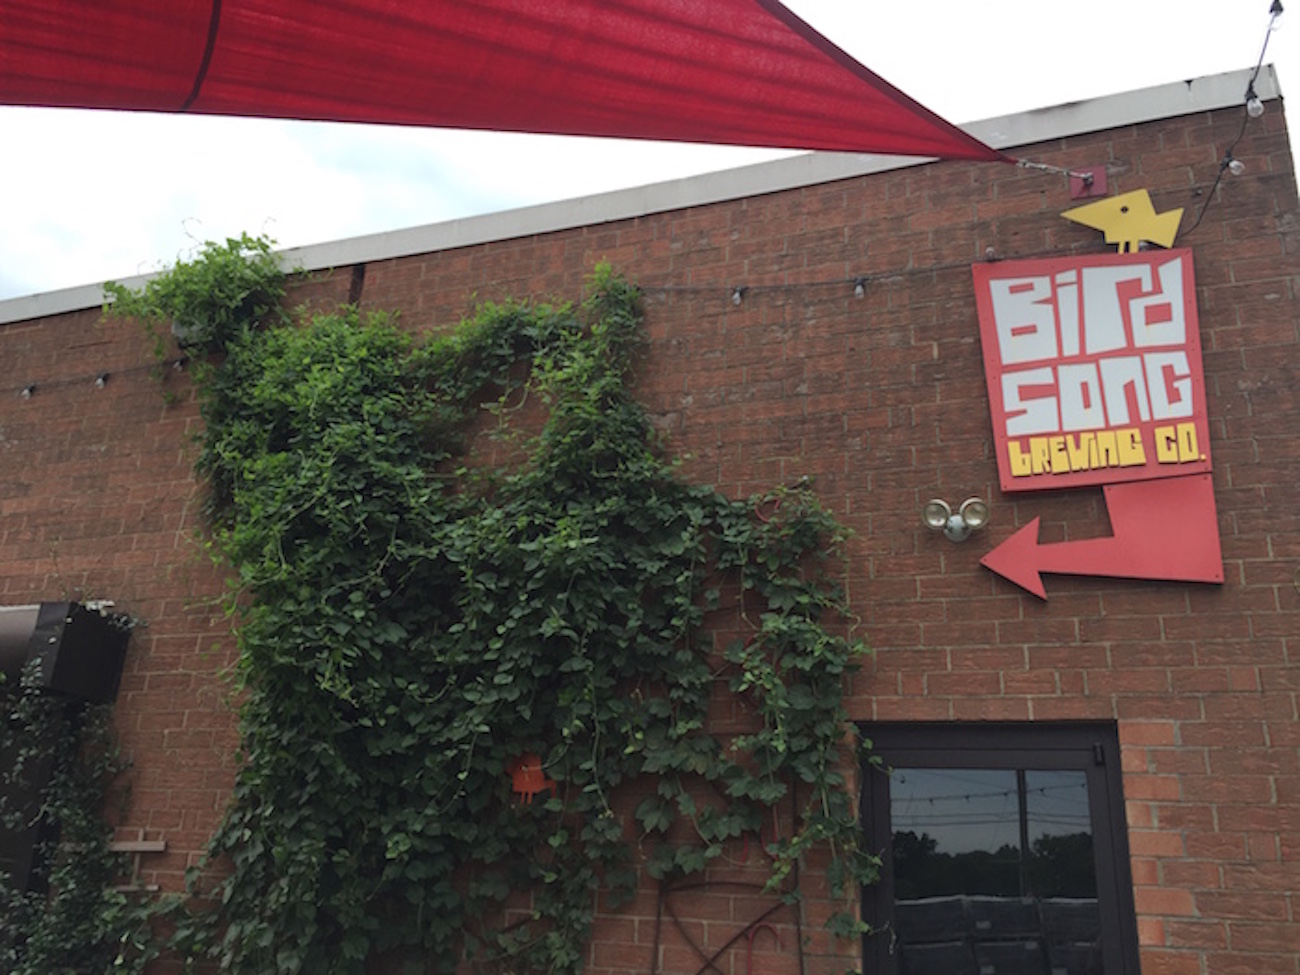 Both NoDa Brewing and Birdsong are upgrading their patios